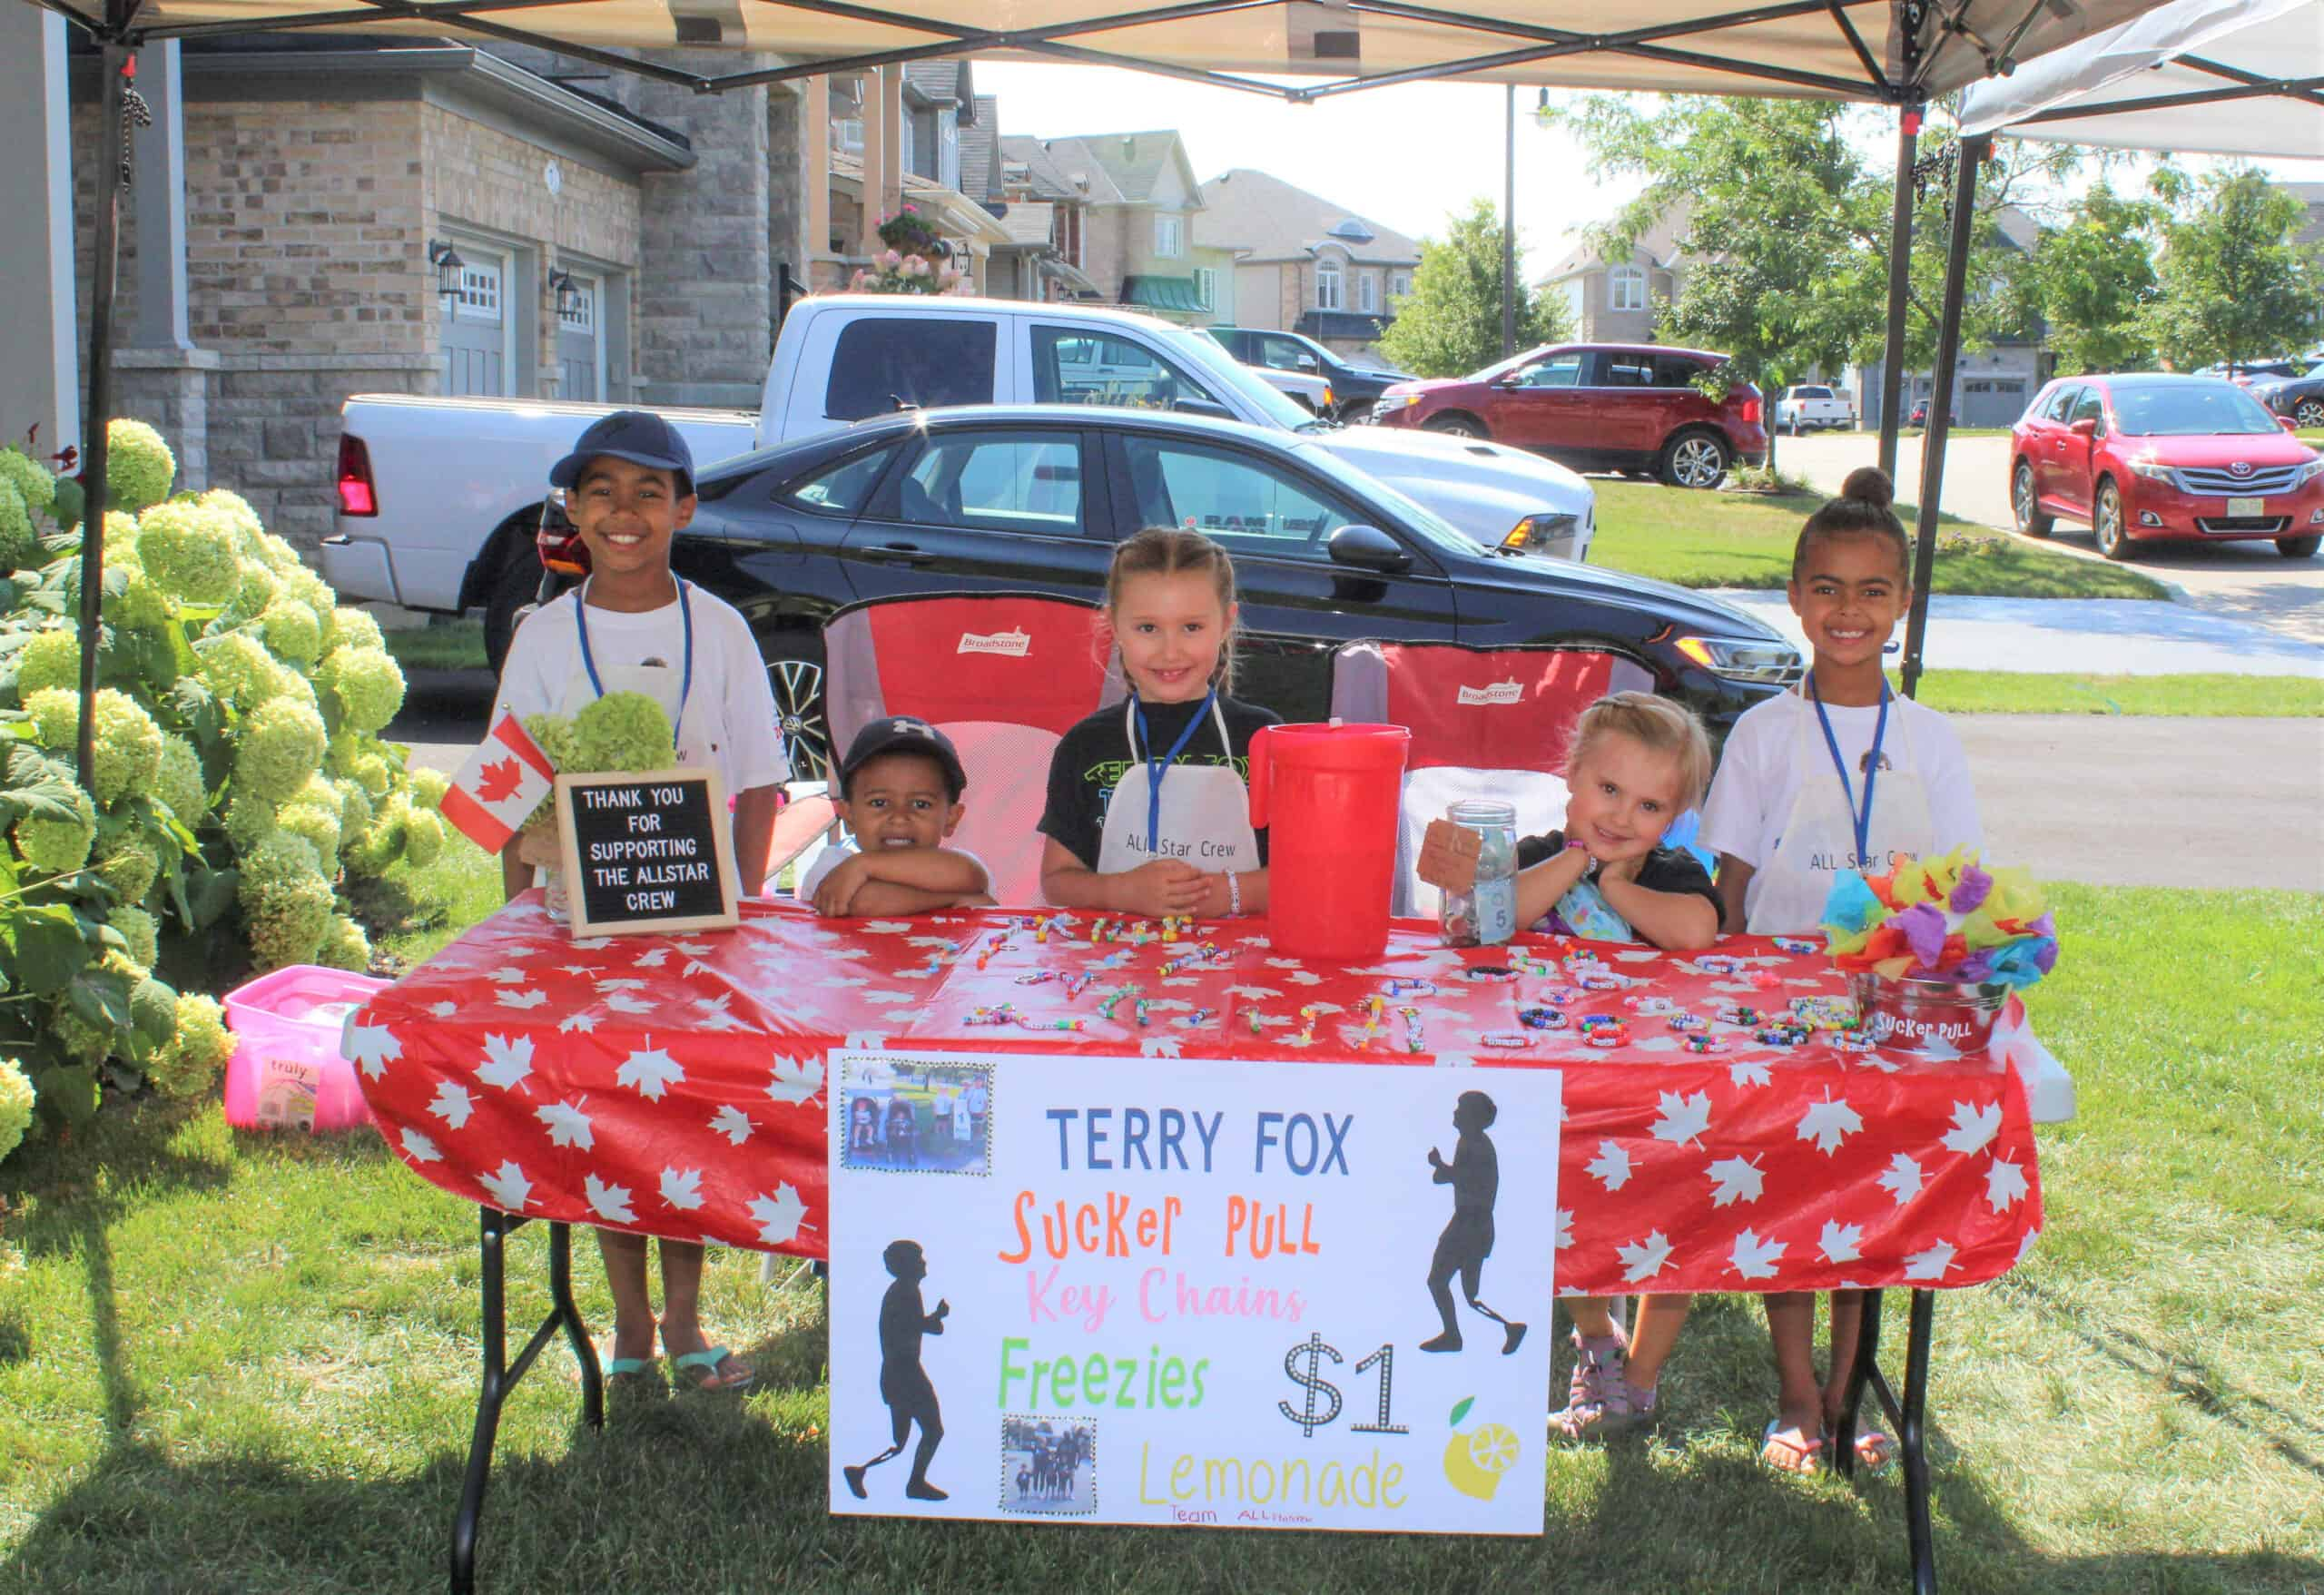 Raising money for Terry Fox